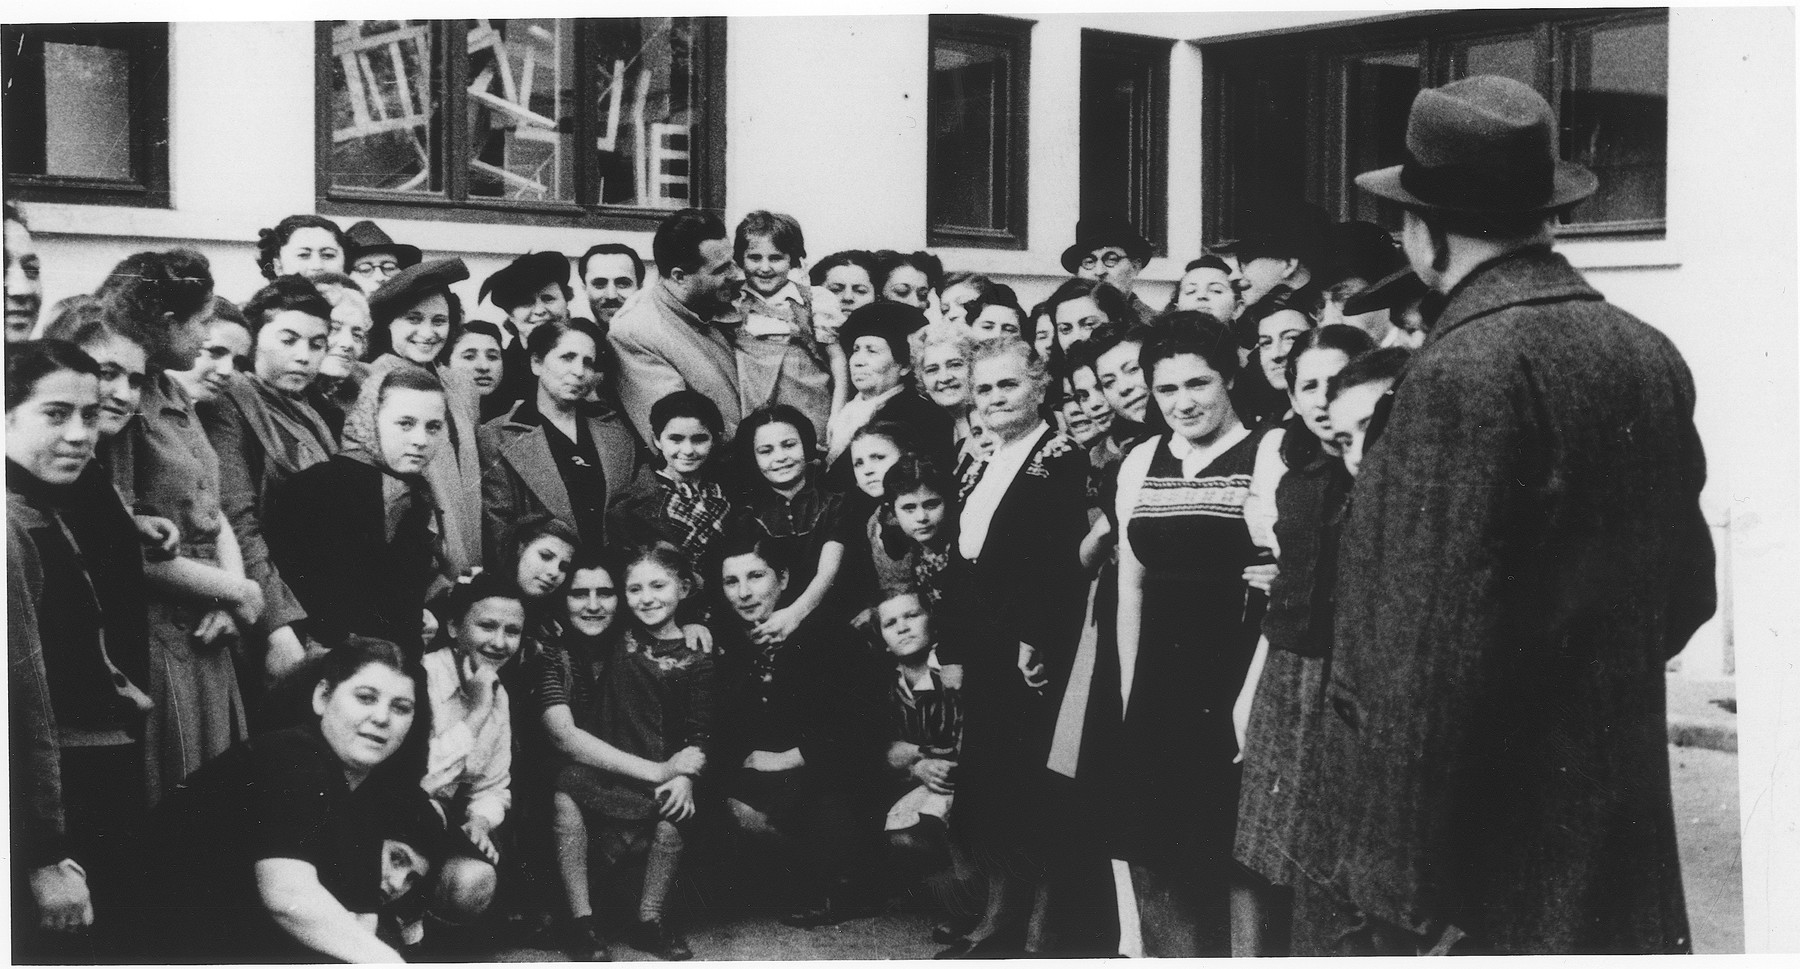 Social welfare workers involved in the effort to repatriate the Jewish orphans from Transnistria, pose with some of the returning children at an orphanage in Bucharest.   Among those pictured are Anny (Hubner) Andermann (back row in the feathered beret) and Betty Schwefelberg (seventh from the left with a large hat).